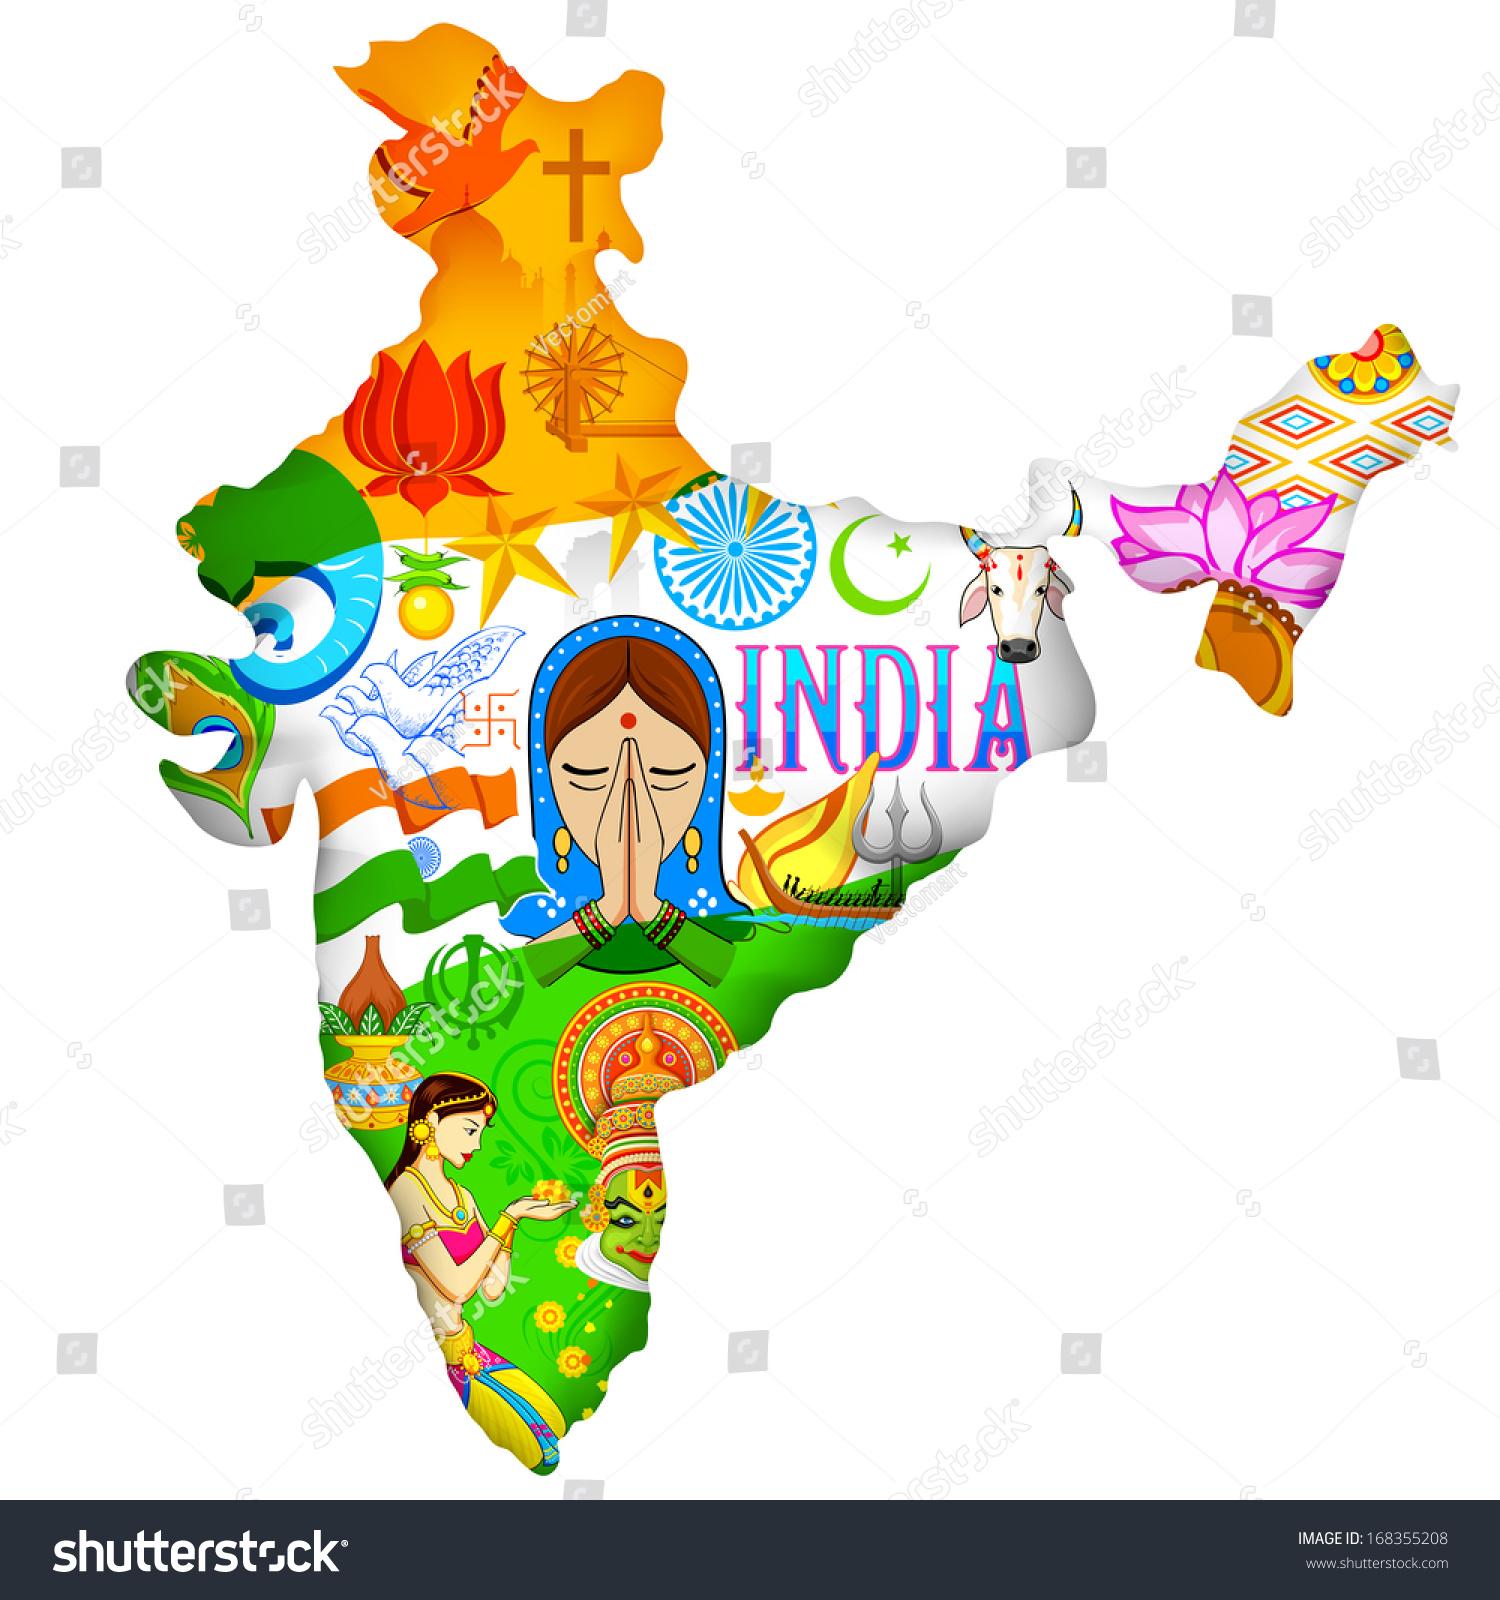 Illustration Indian Map Showing Culture India Stock Vector